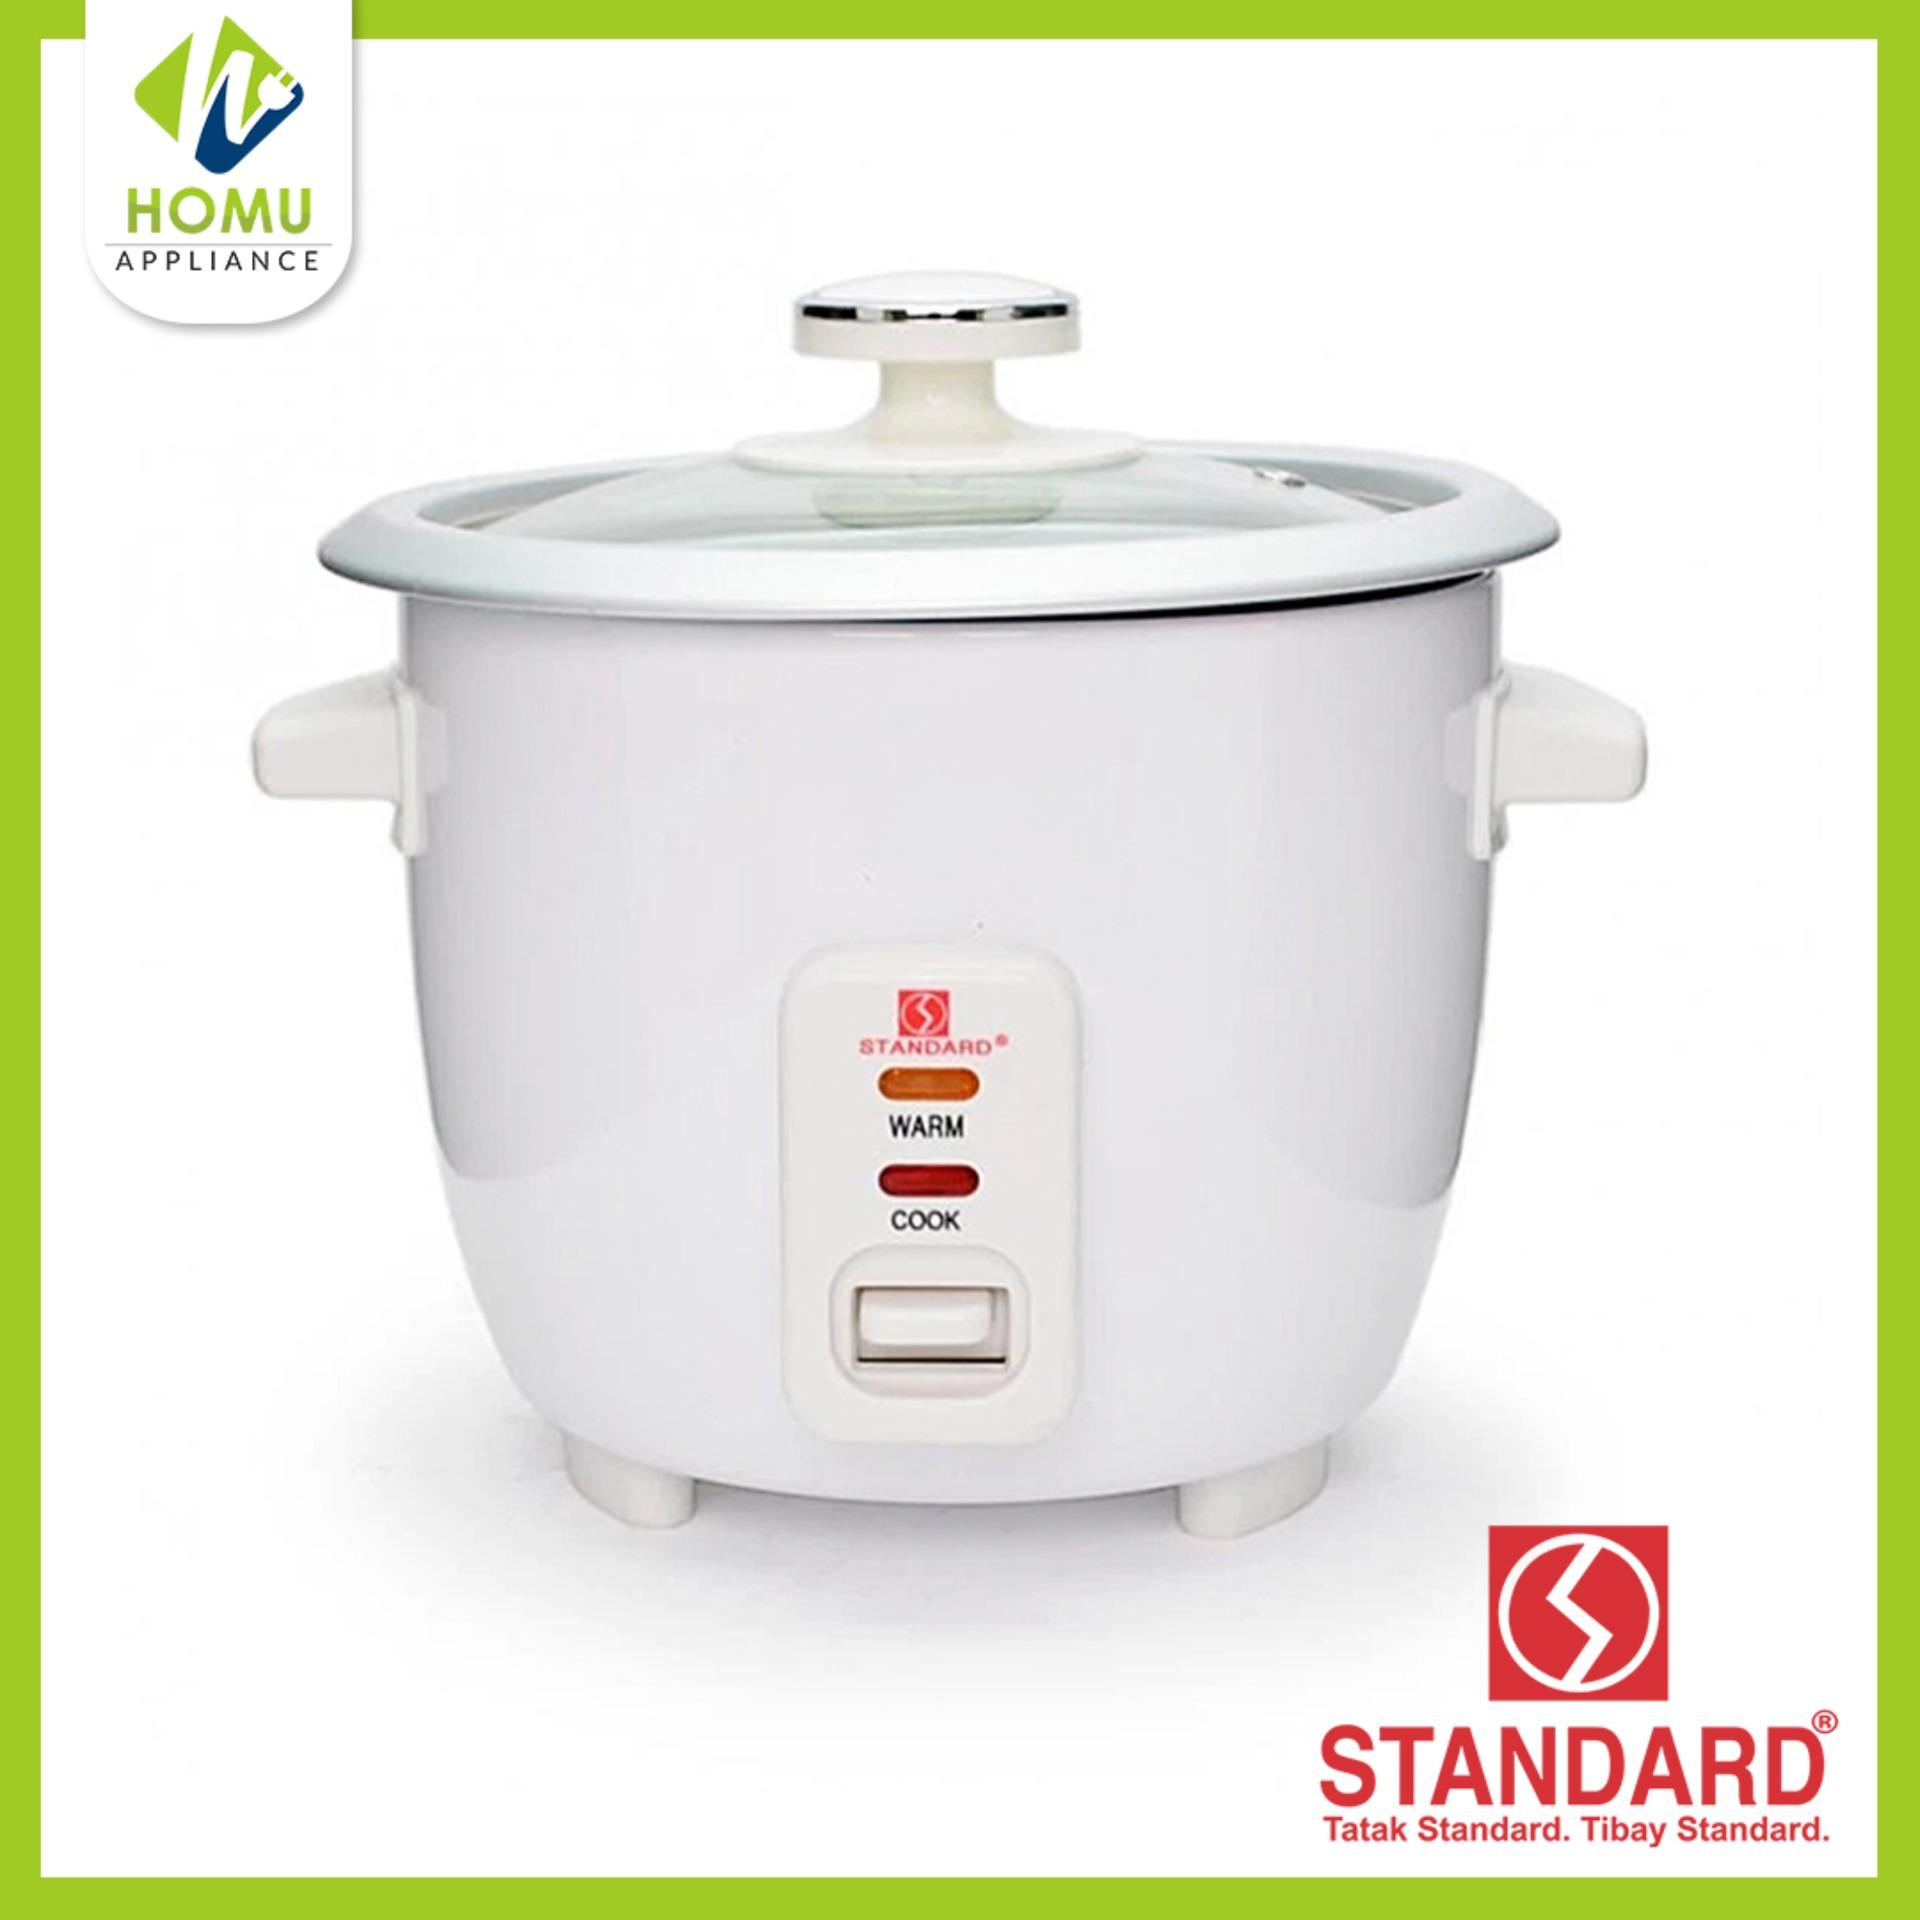 hight resolution of standard srg 1 0l rice cooker